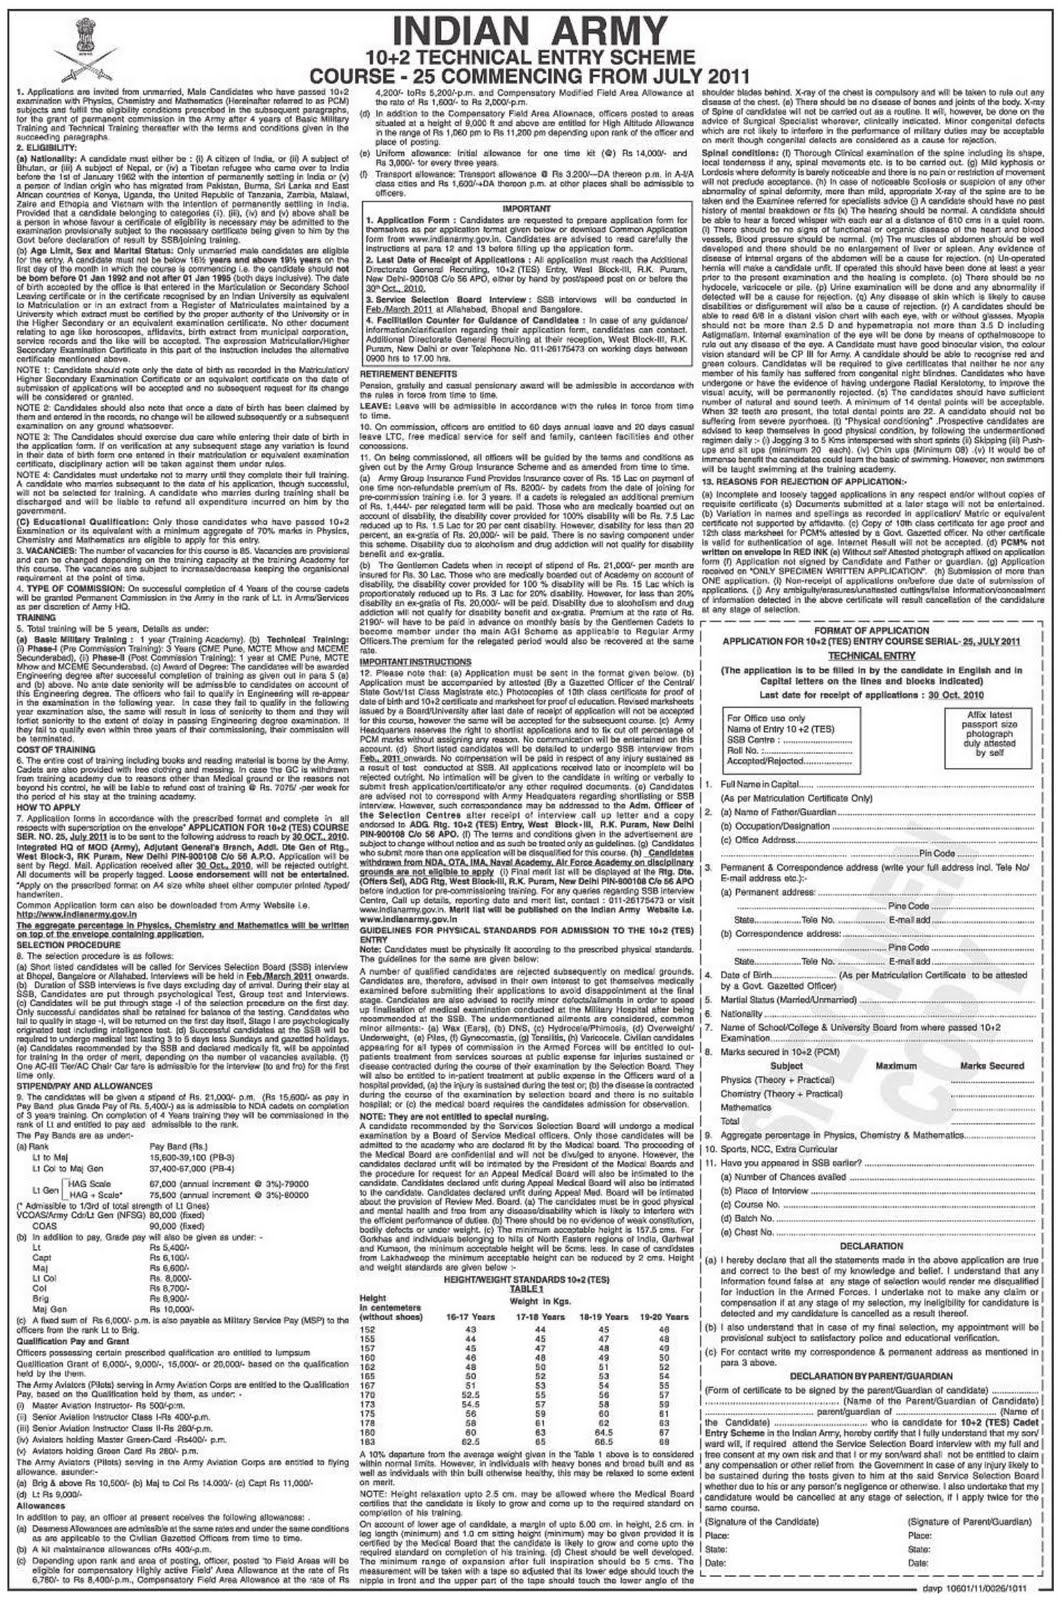 Indian army application form